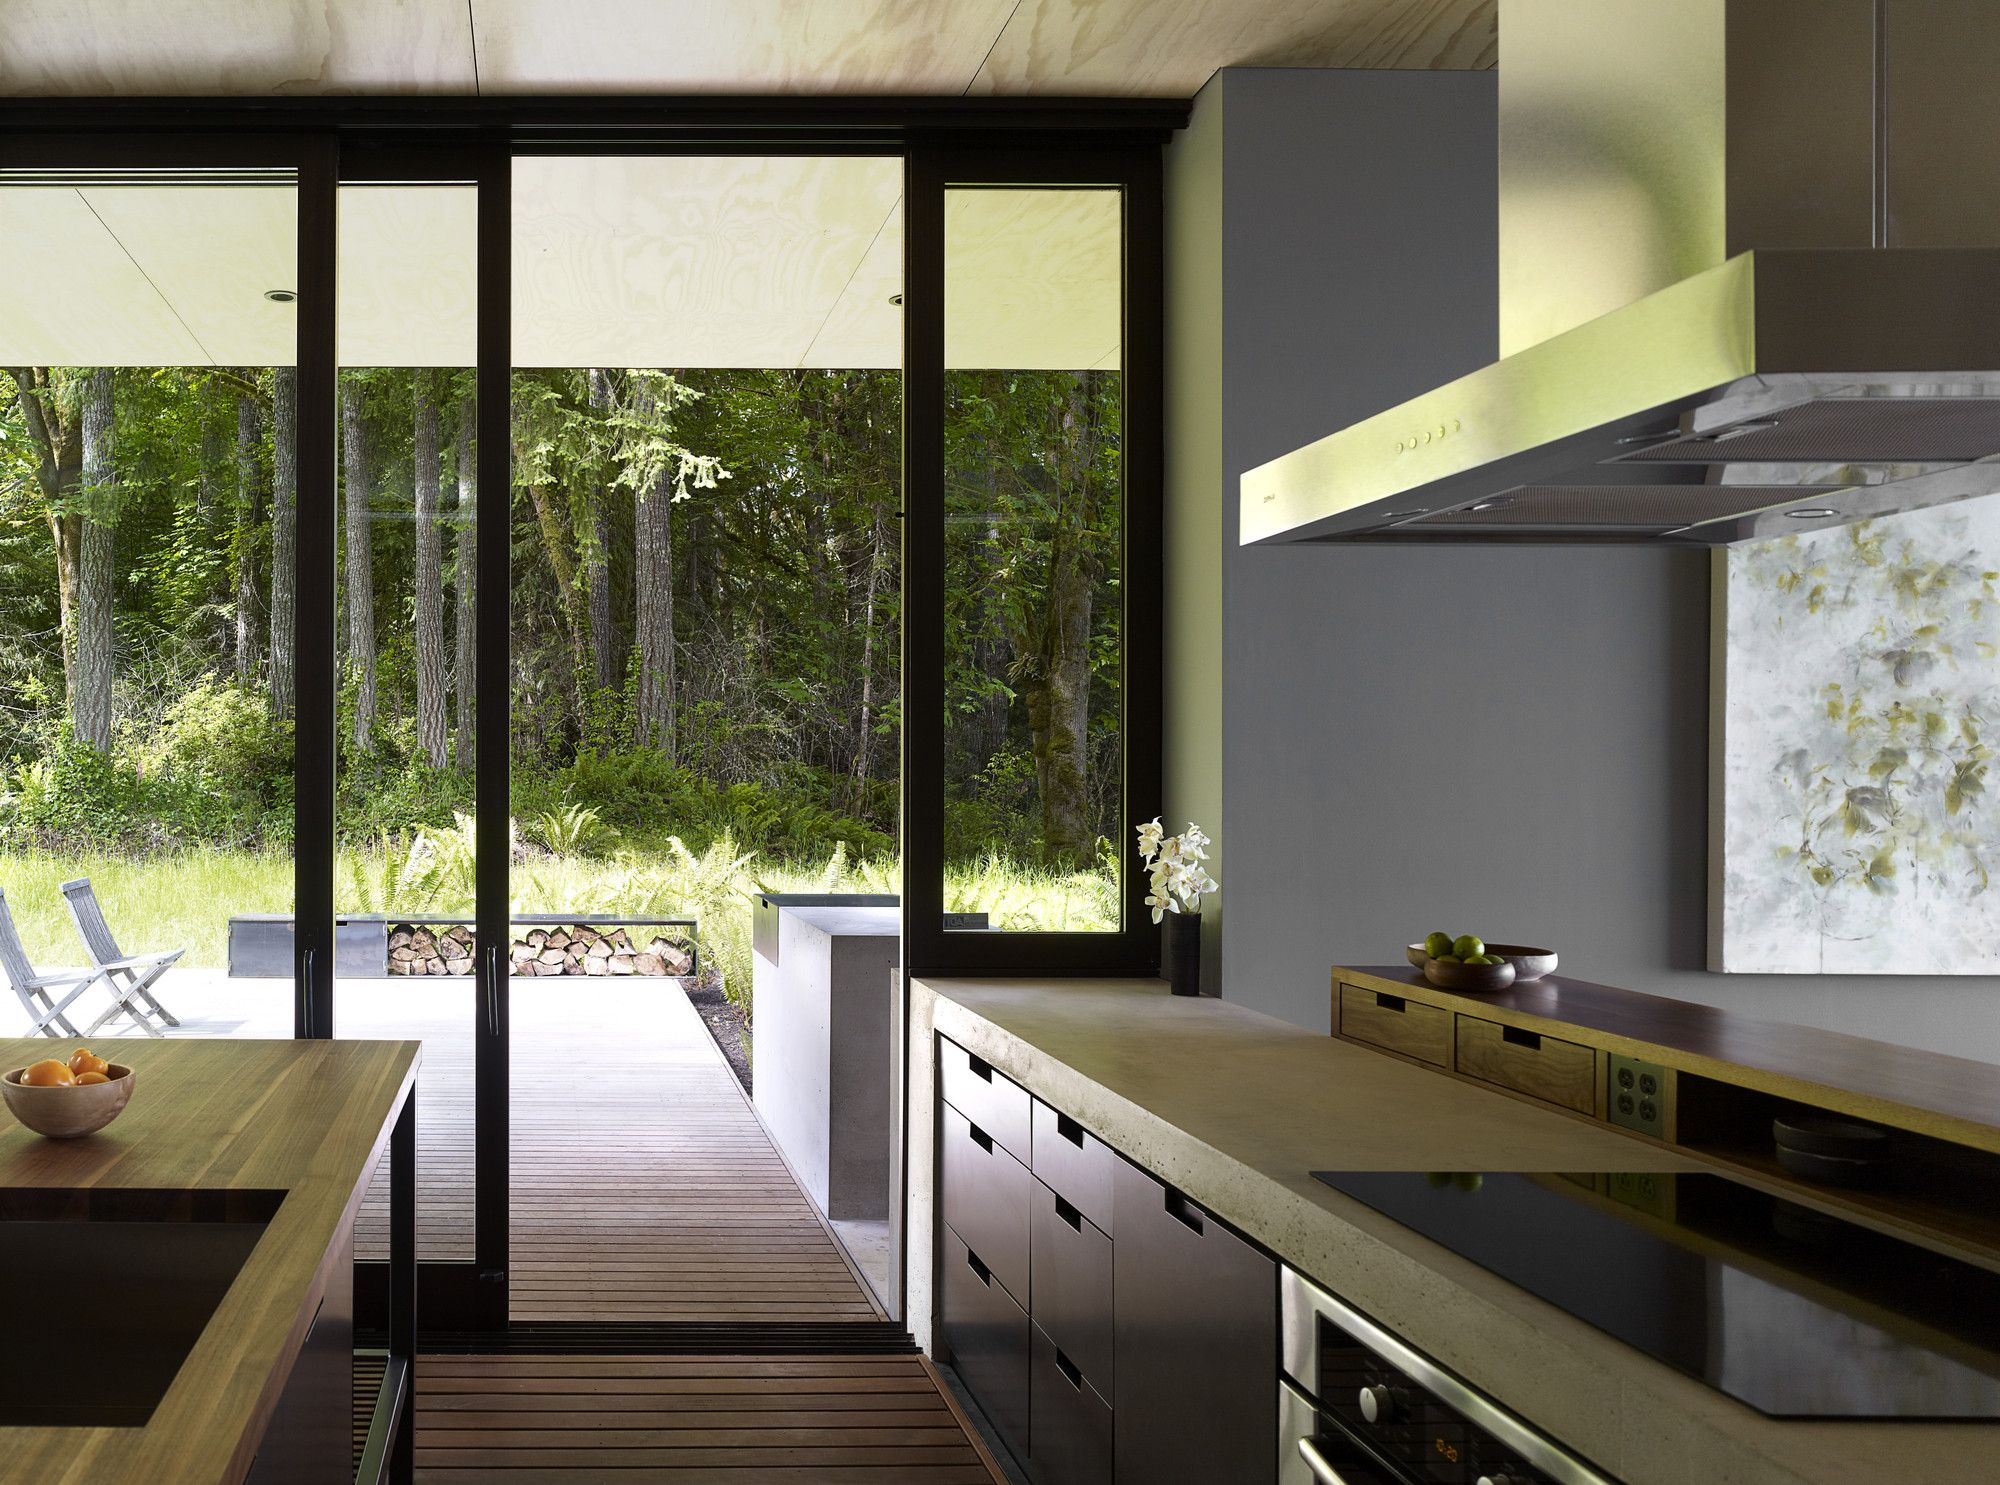 Mw works architecture - Interior Aspect Of Case Inlet Retreat In Washington State Usa By Mw Works Architecture Design